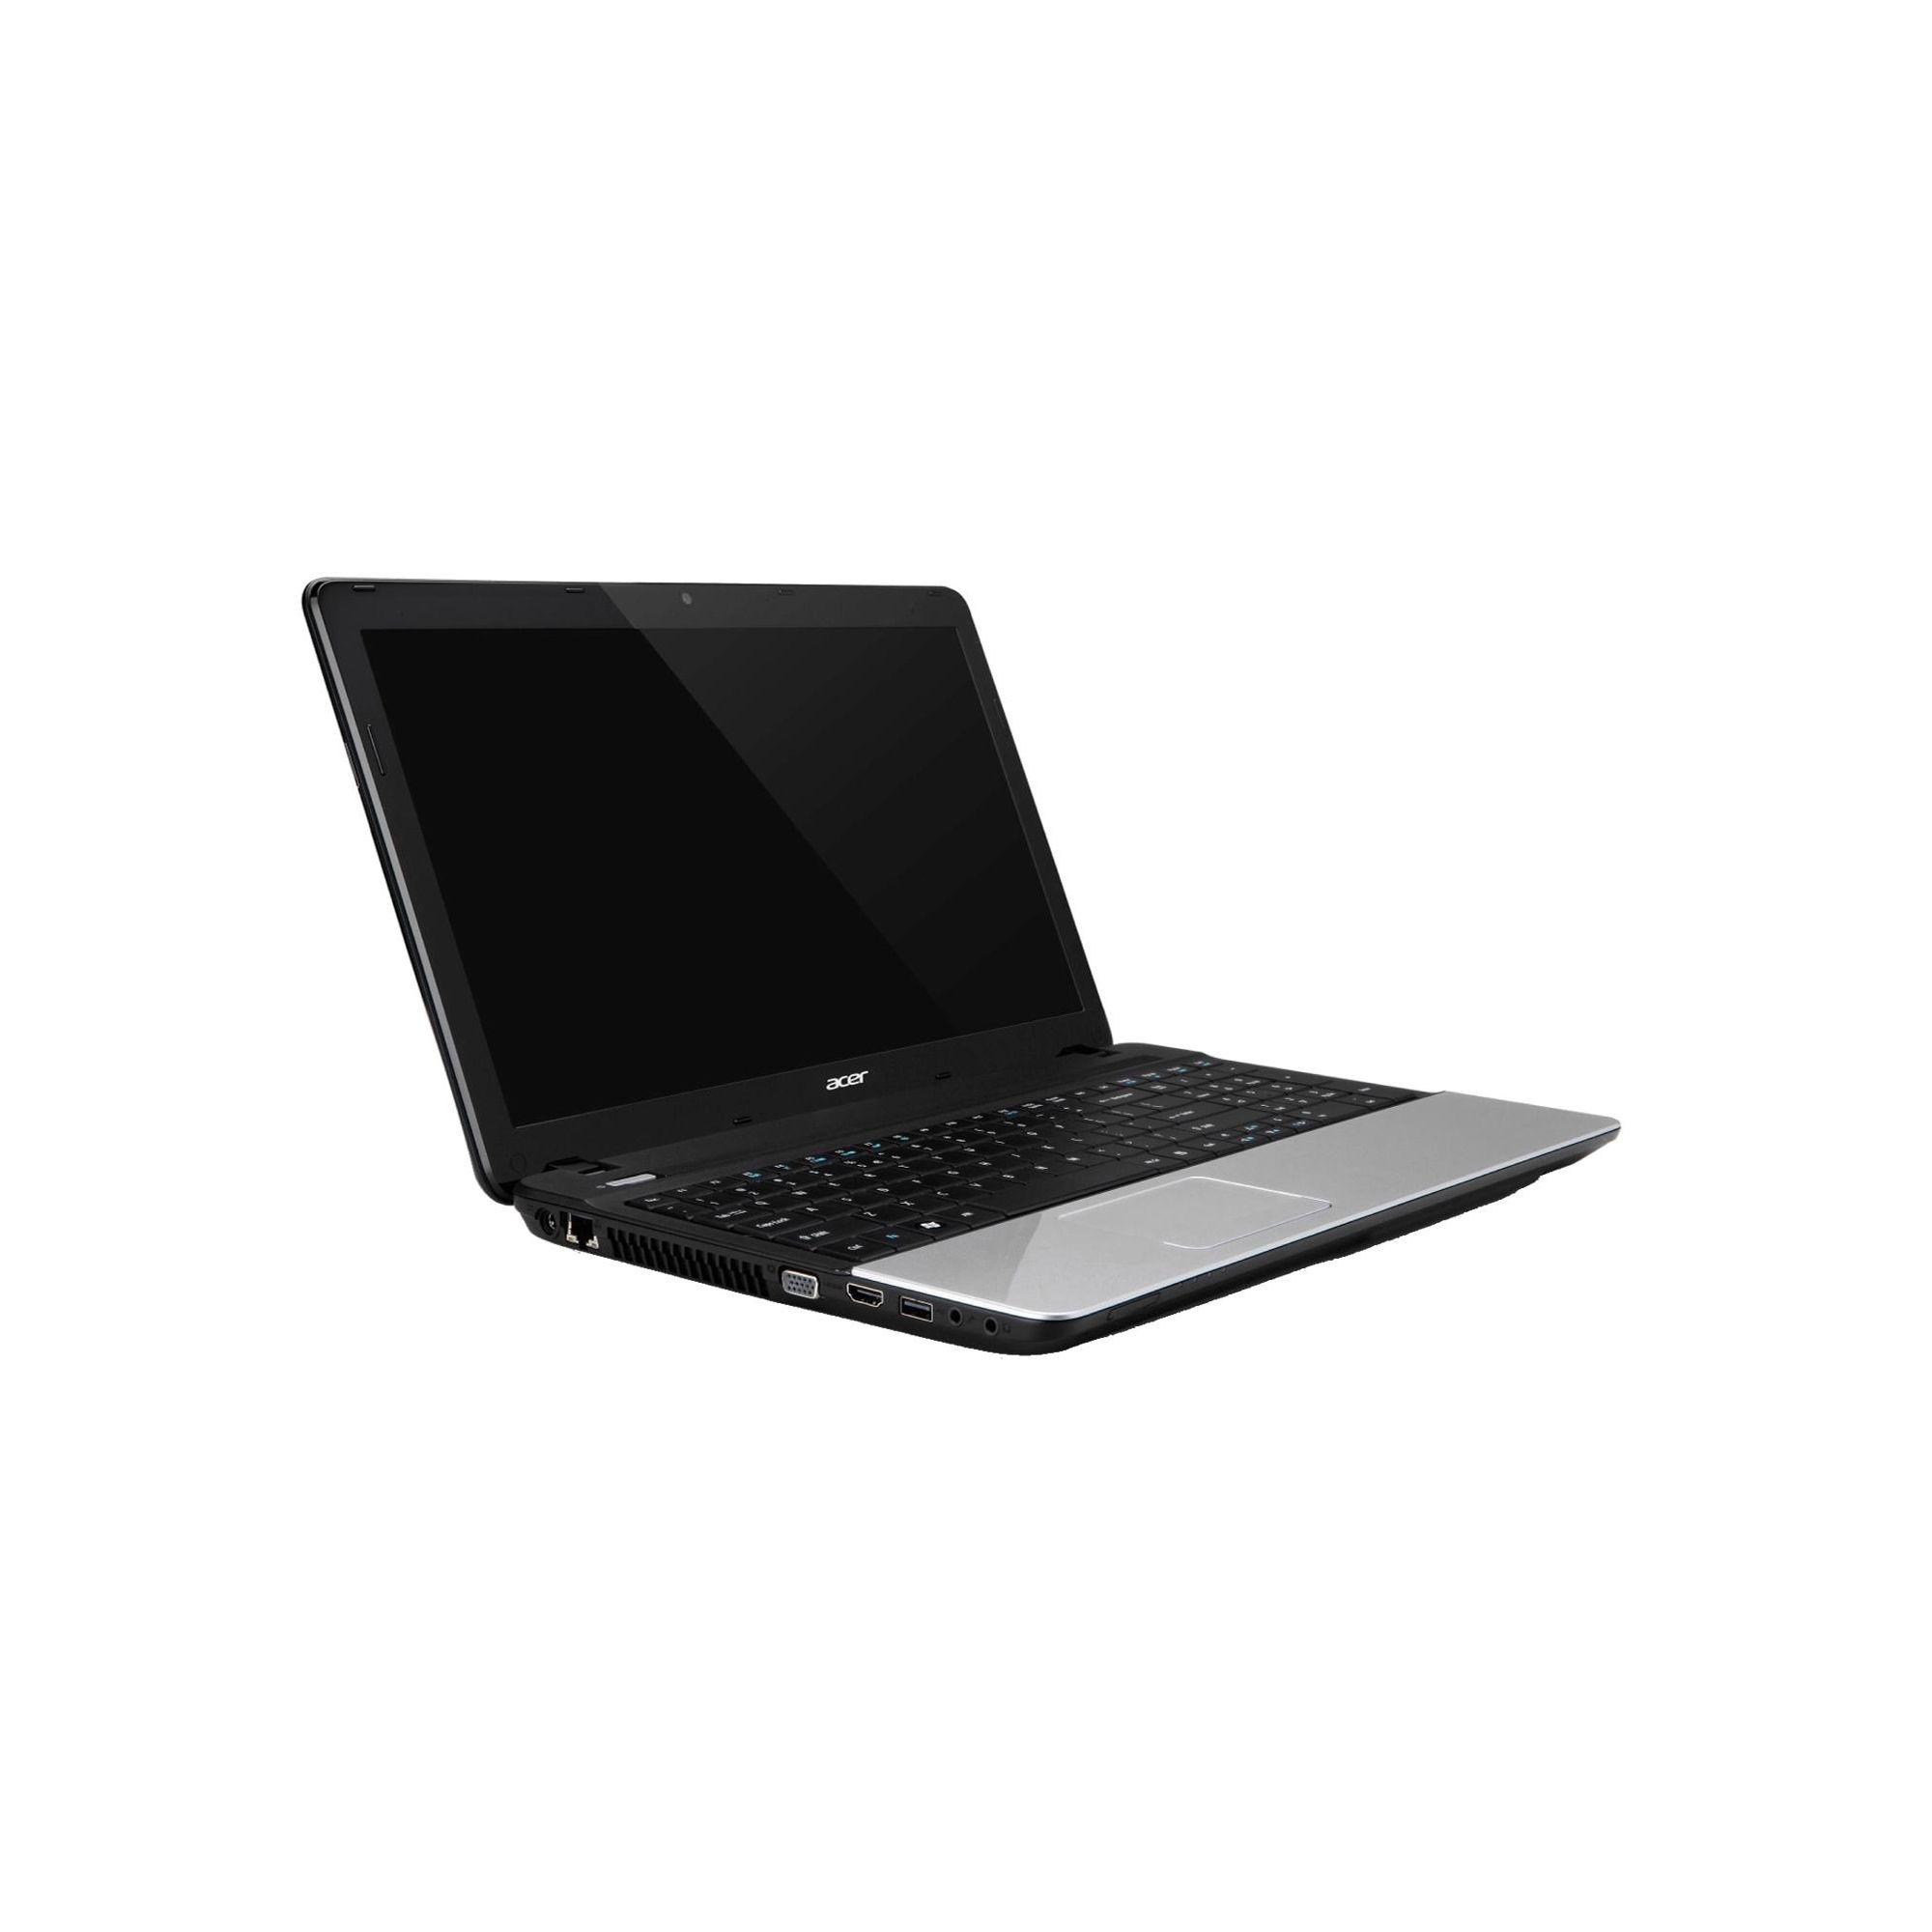 Acer Aspire E1-571-53214G50Mnks (15.6 inch) Notebook PC Core i5 (3210M) 2.5GHz 4GB 500GB DVD-SuperMulti DL WLAN Webcam Windows 8 64-bit (Intel GMA HD) at Tesco Direct